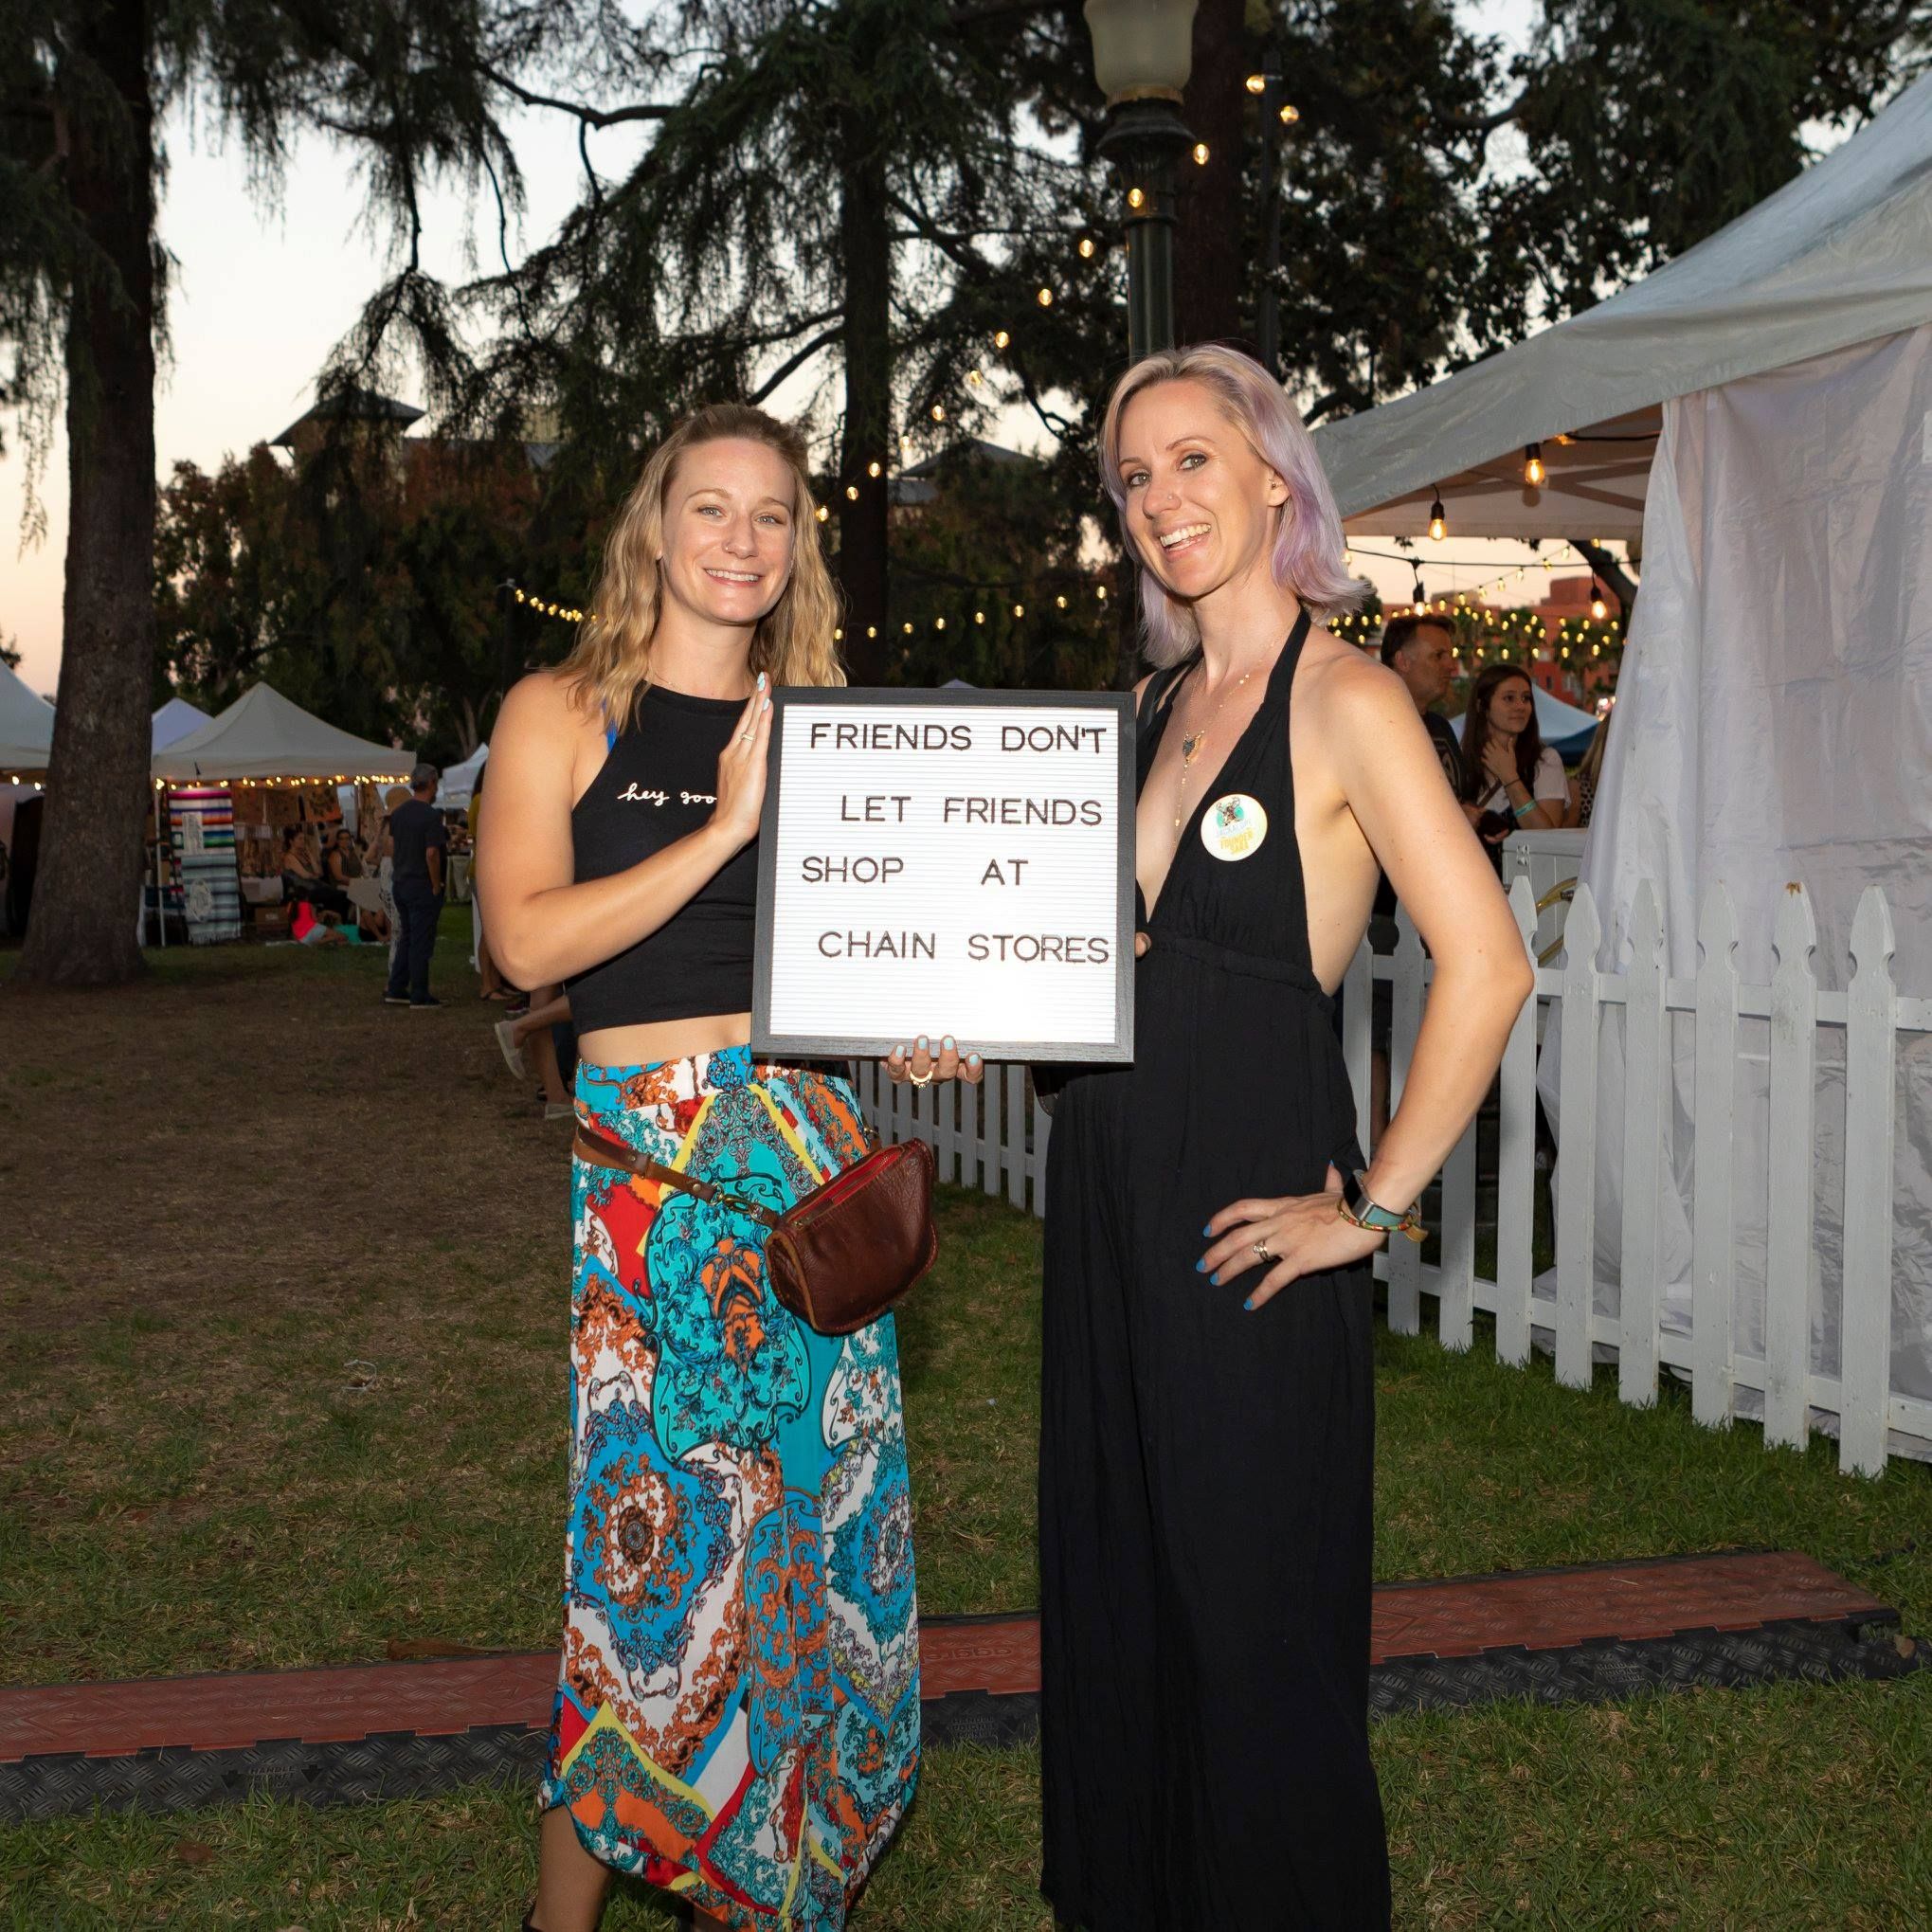 Melissa Shipley and Sara Diederich, Founders of Jackalope Arts